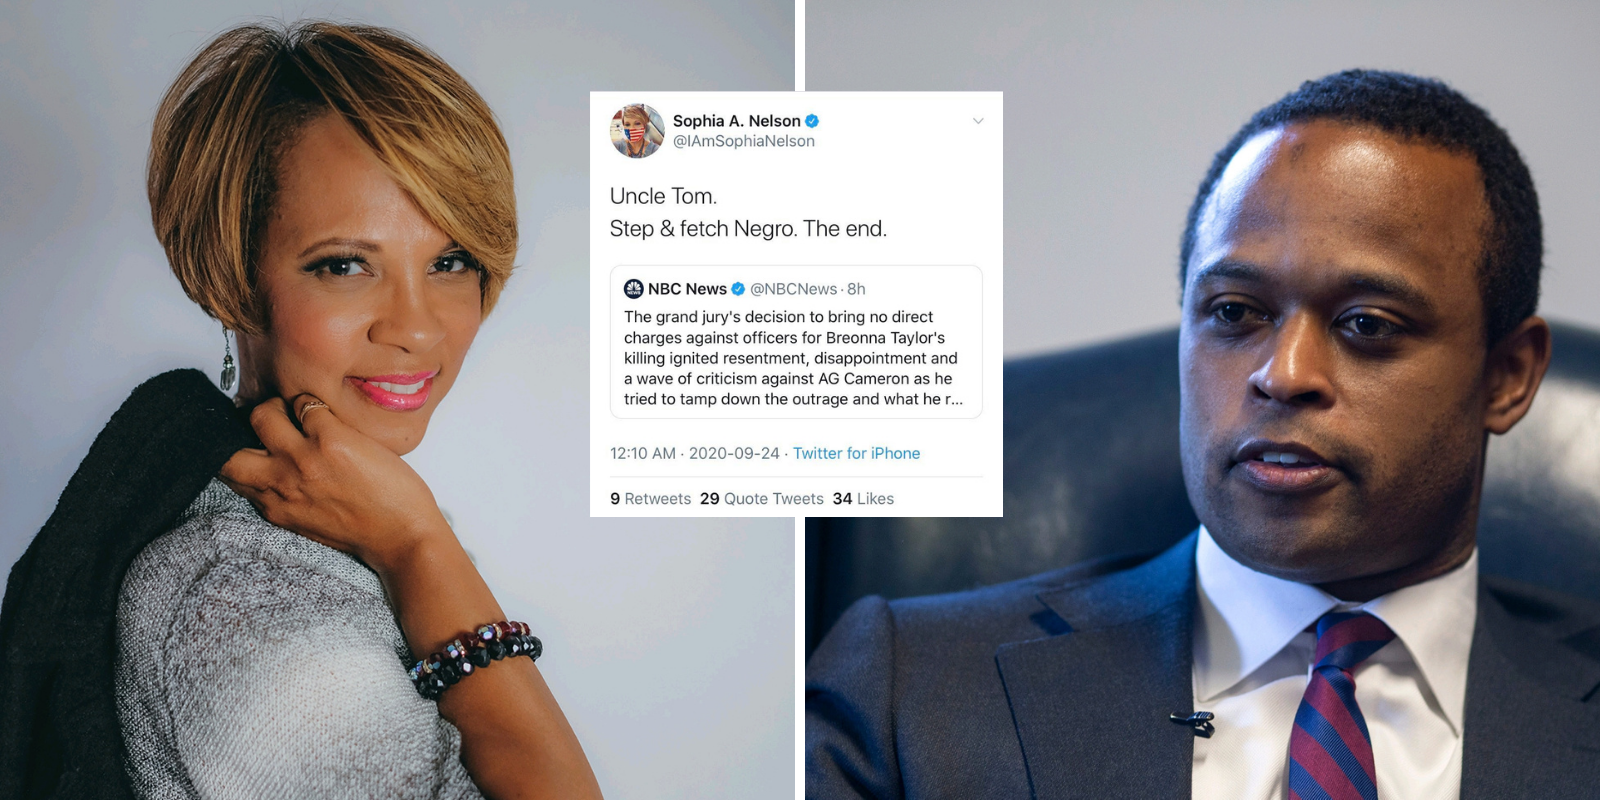 CNN contributor calls Kentucky AG 'Uncle Tom' and 'step & fetch negro'